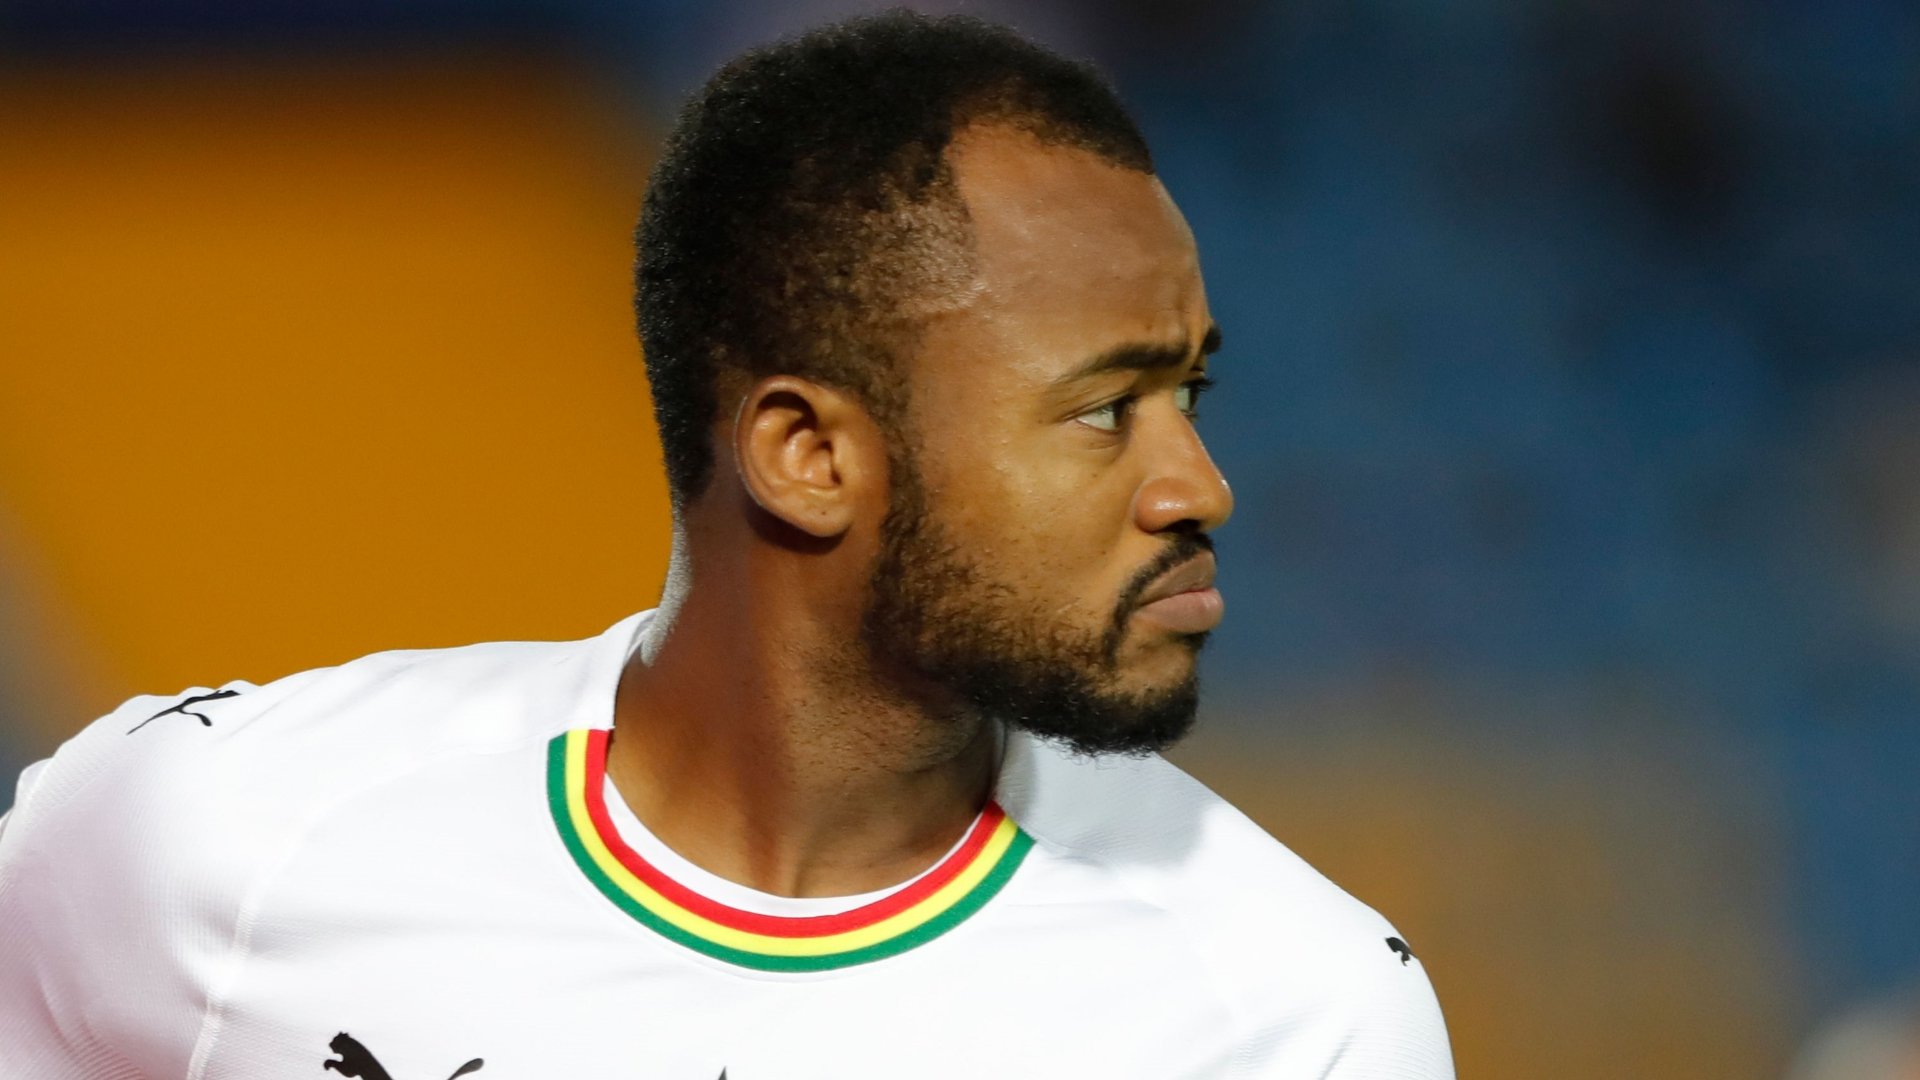 Afcon 2021 qualifiers: Andre Ayew backs Jordan to continue 'taking initiatives' after South Africa showing